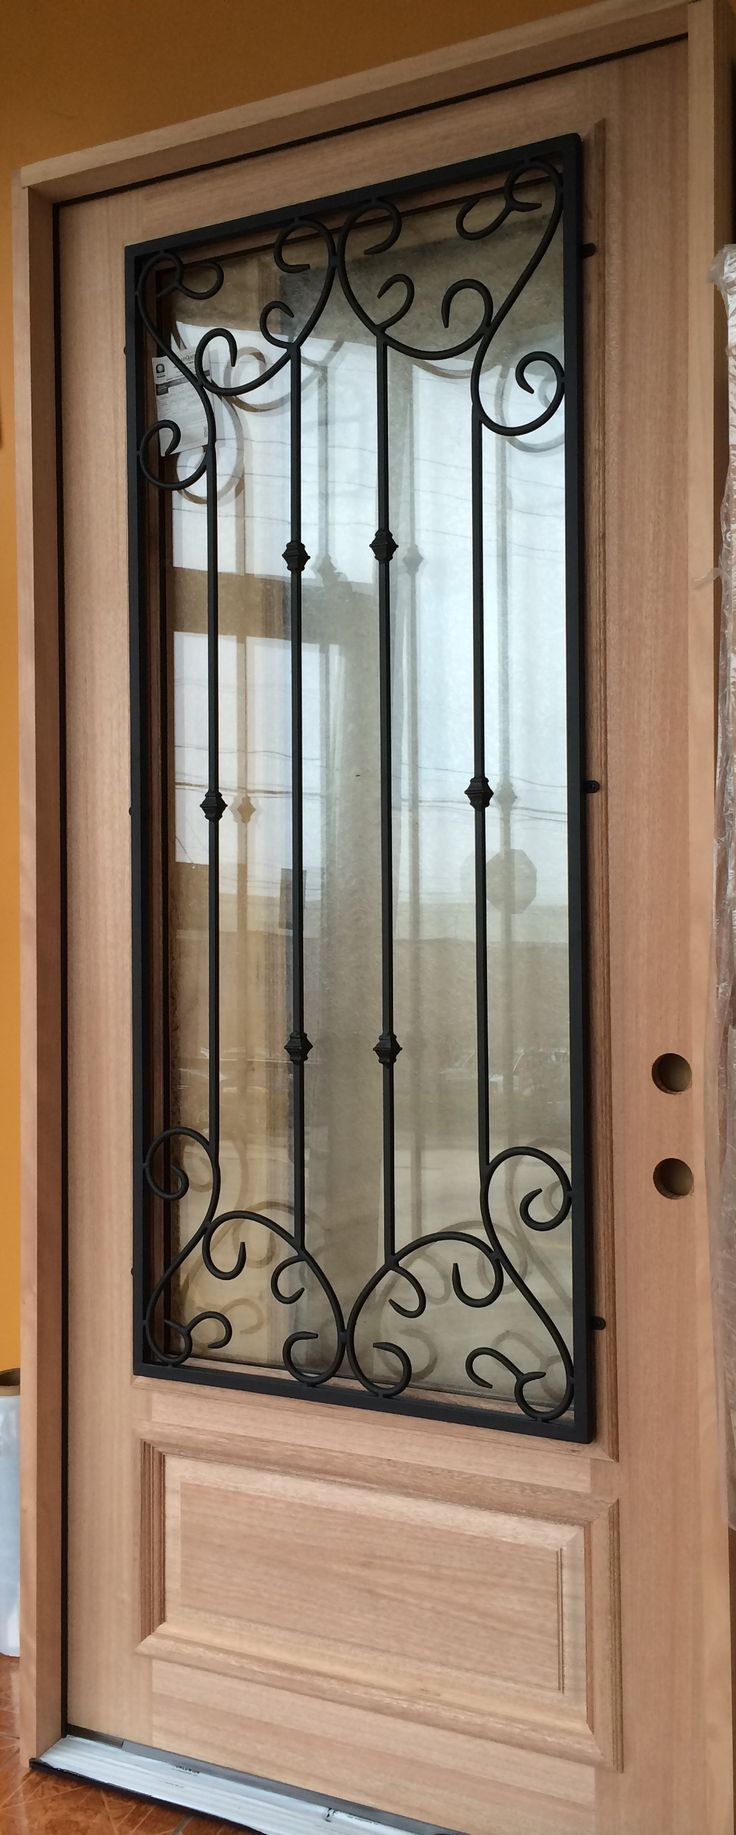 7 Best Iron Grill Mahogany Wood Doors Images On Pinterest Entrance Doors Front Doors And